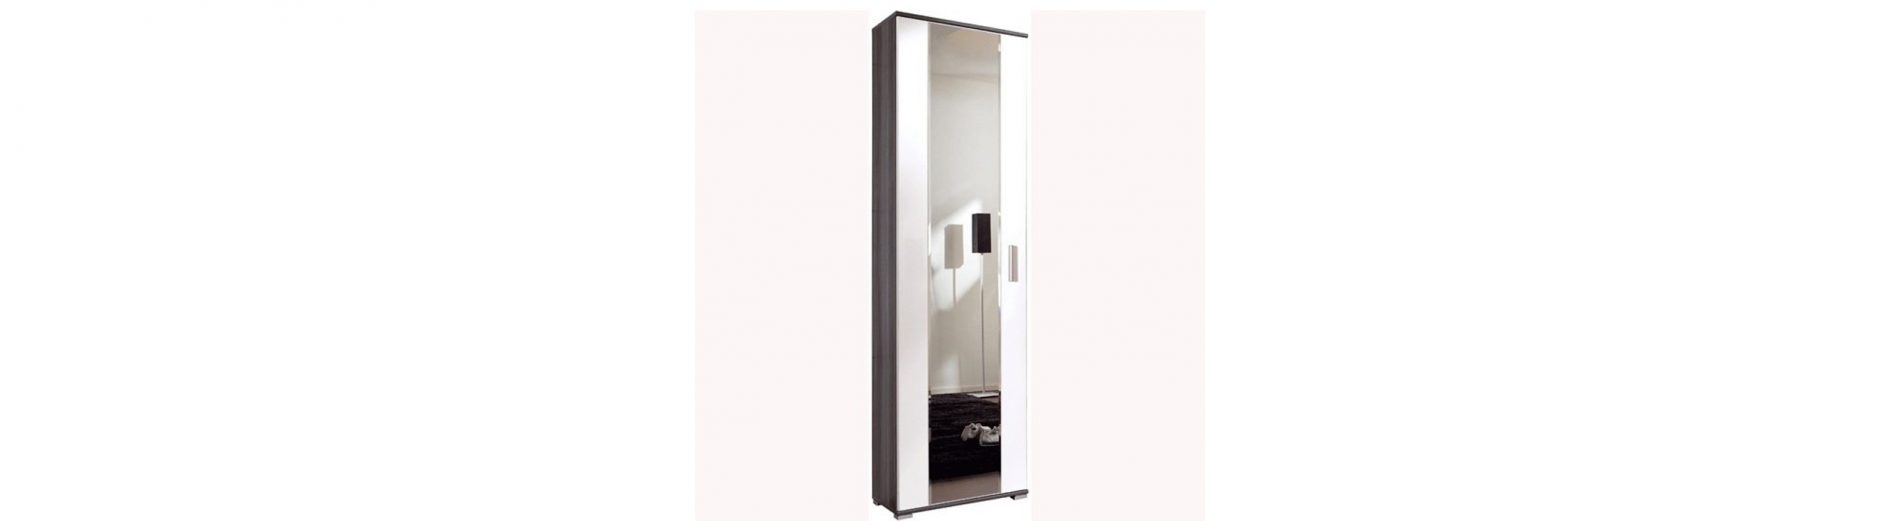 Cheap Wardrobes For Sale Under £200